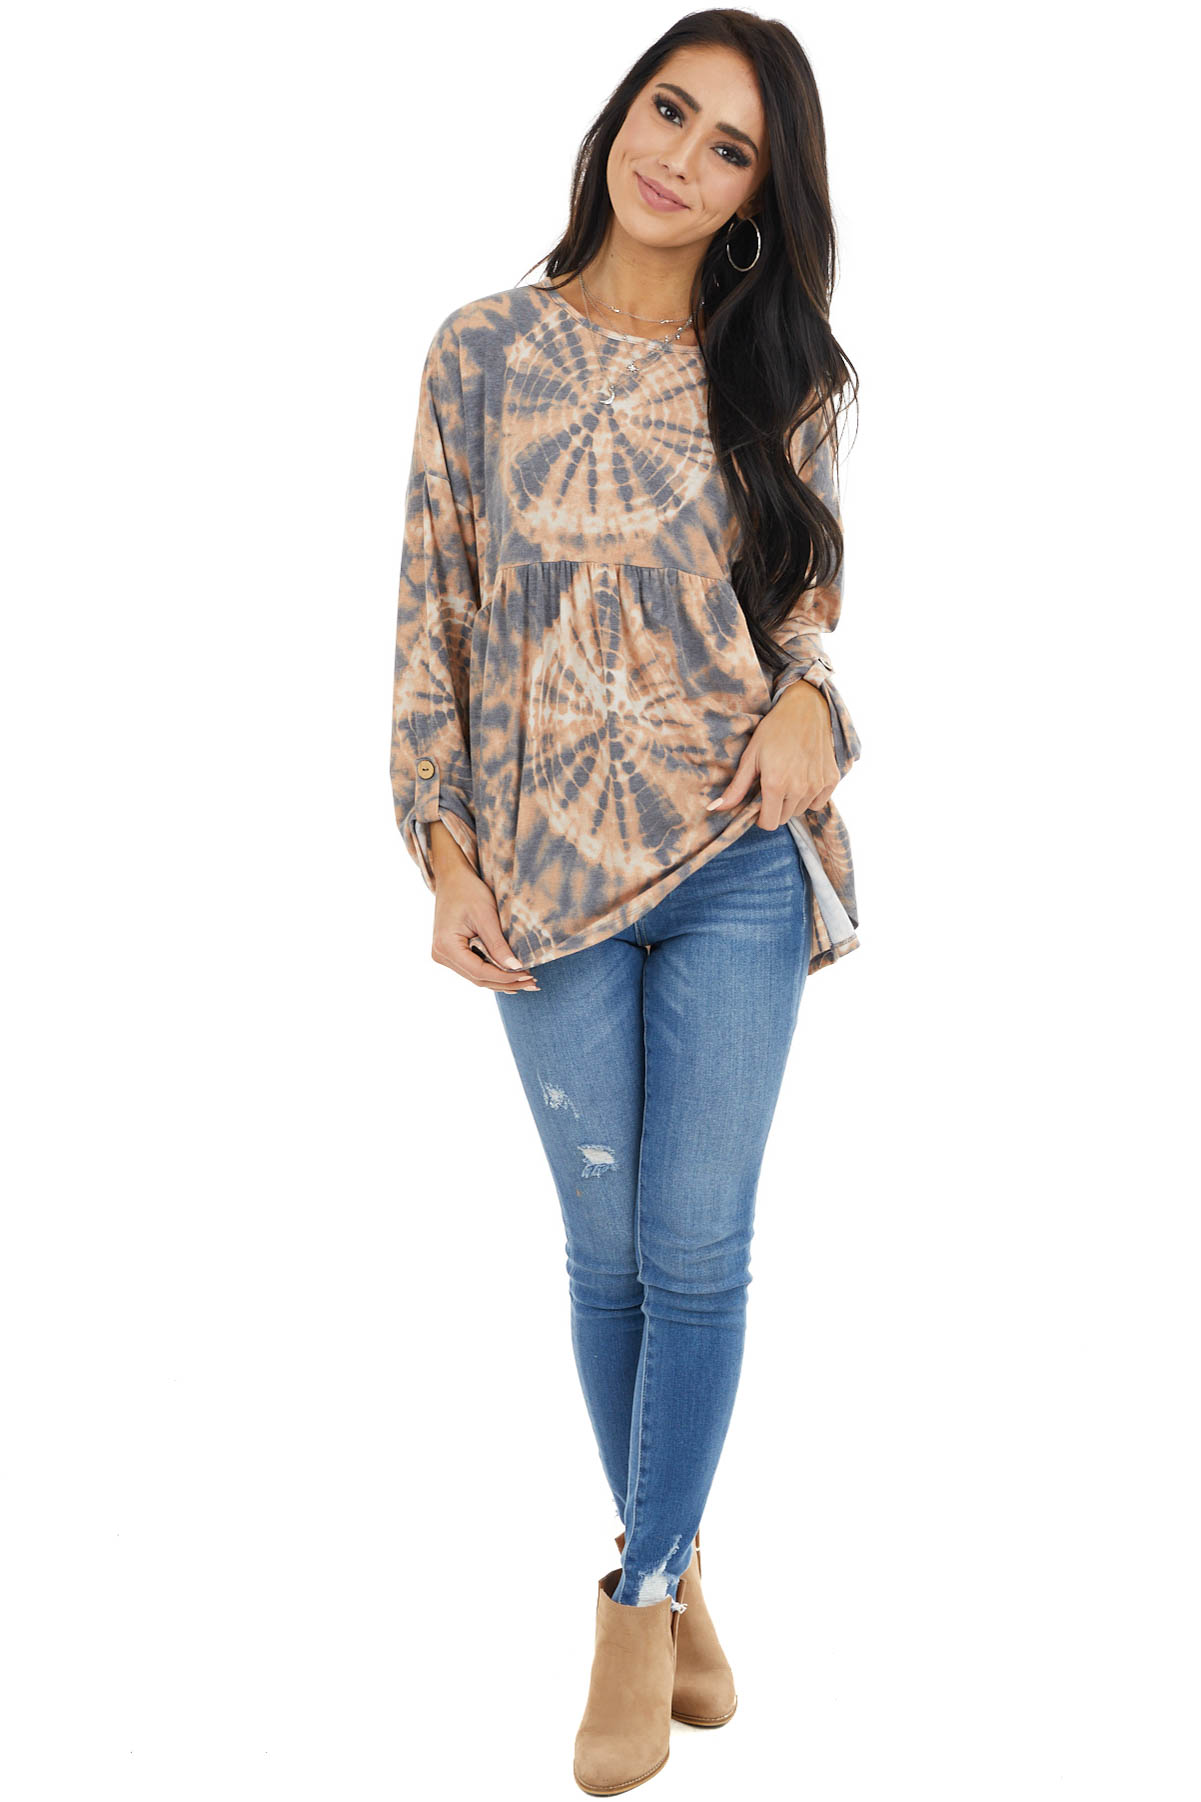 Rust and Charcoal Tie Dye Baby Doll with Rolled Sleeves